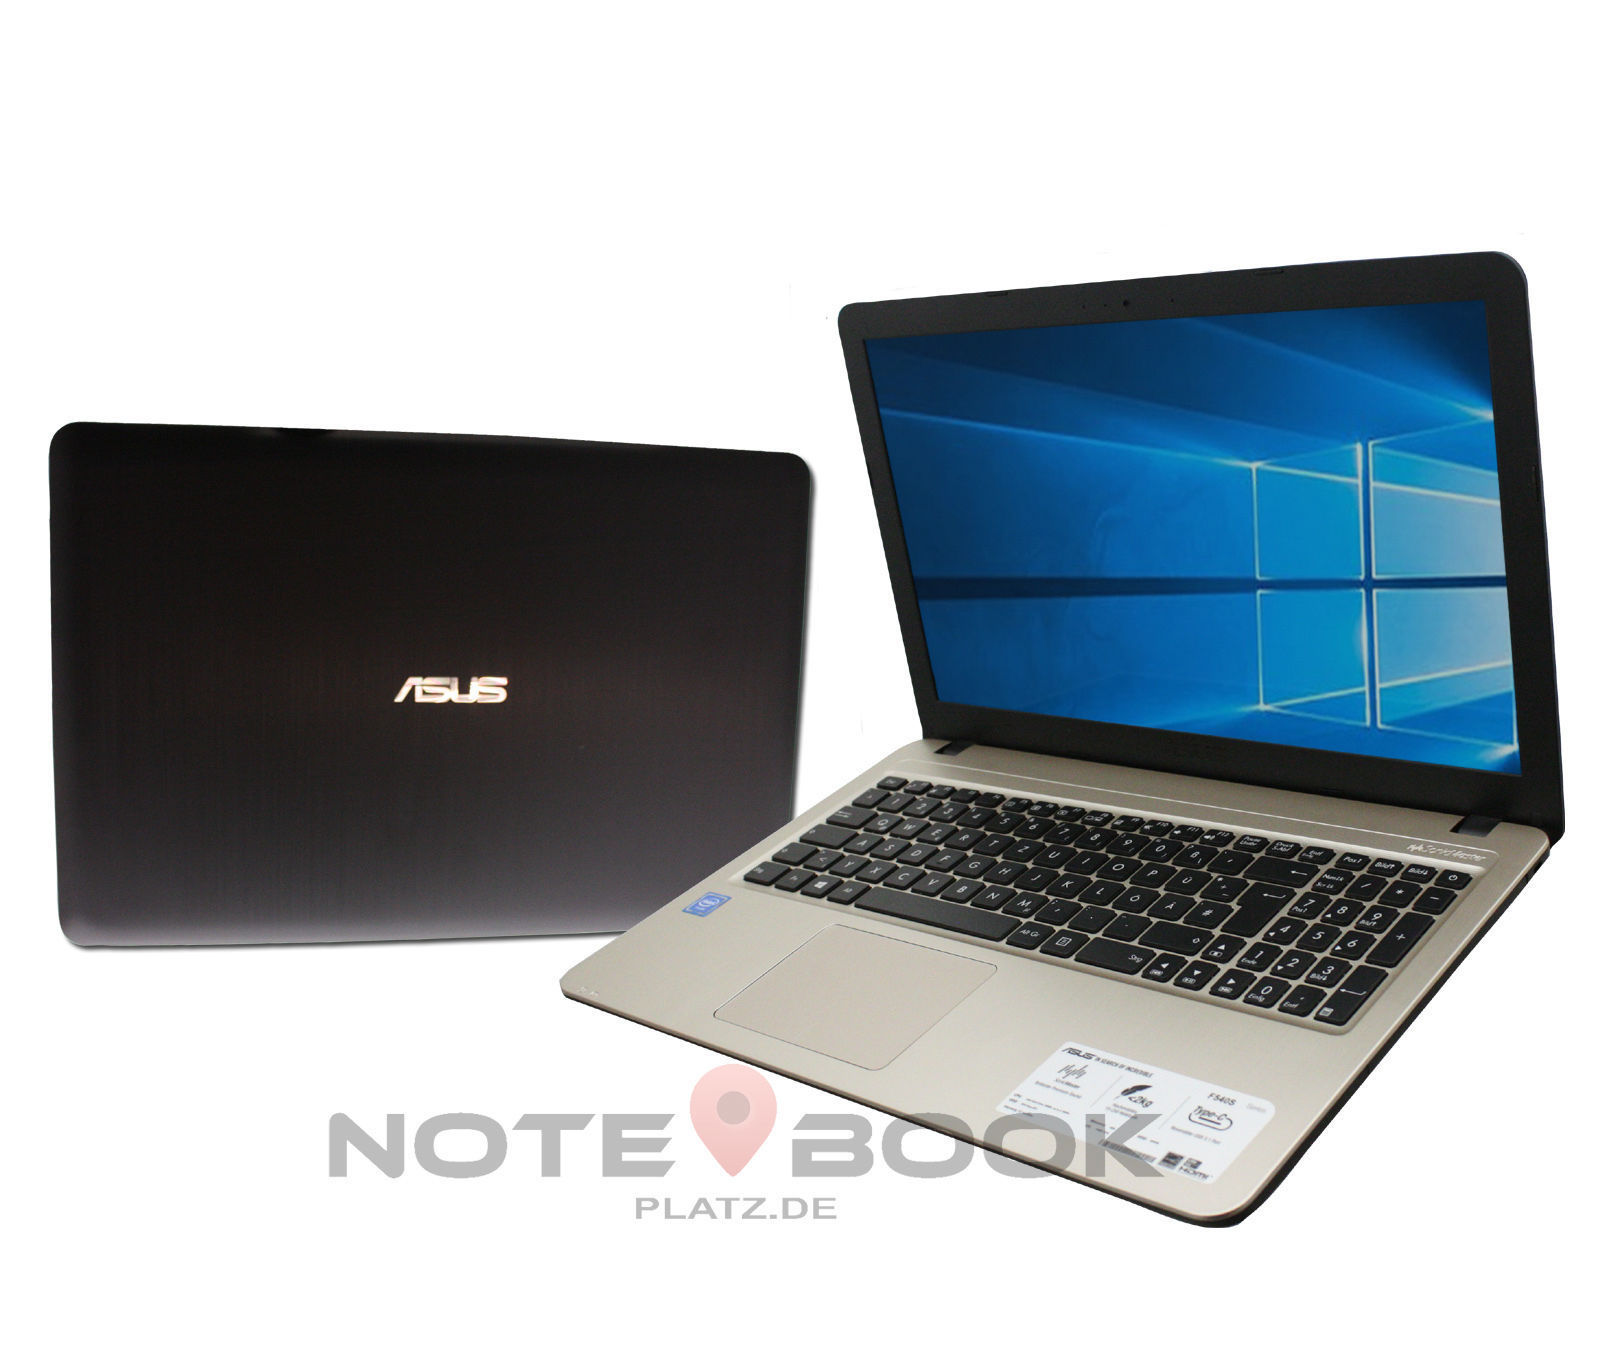 ASUS IN GOLD - LAPTOP - 15,6